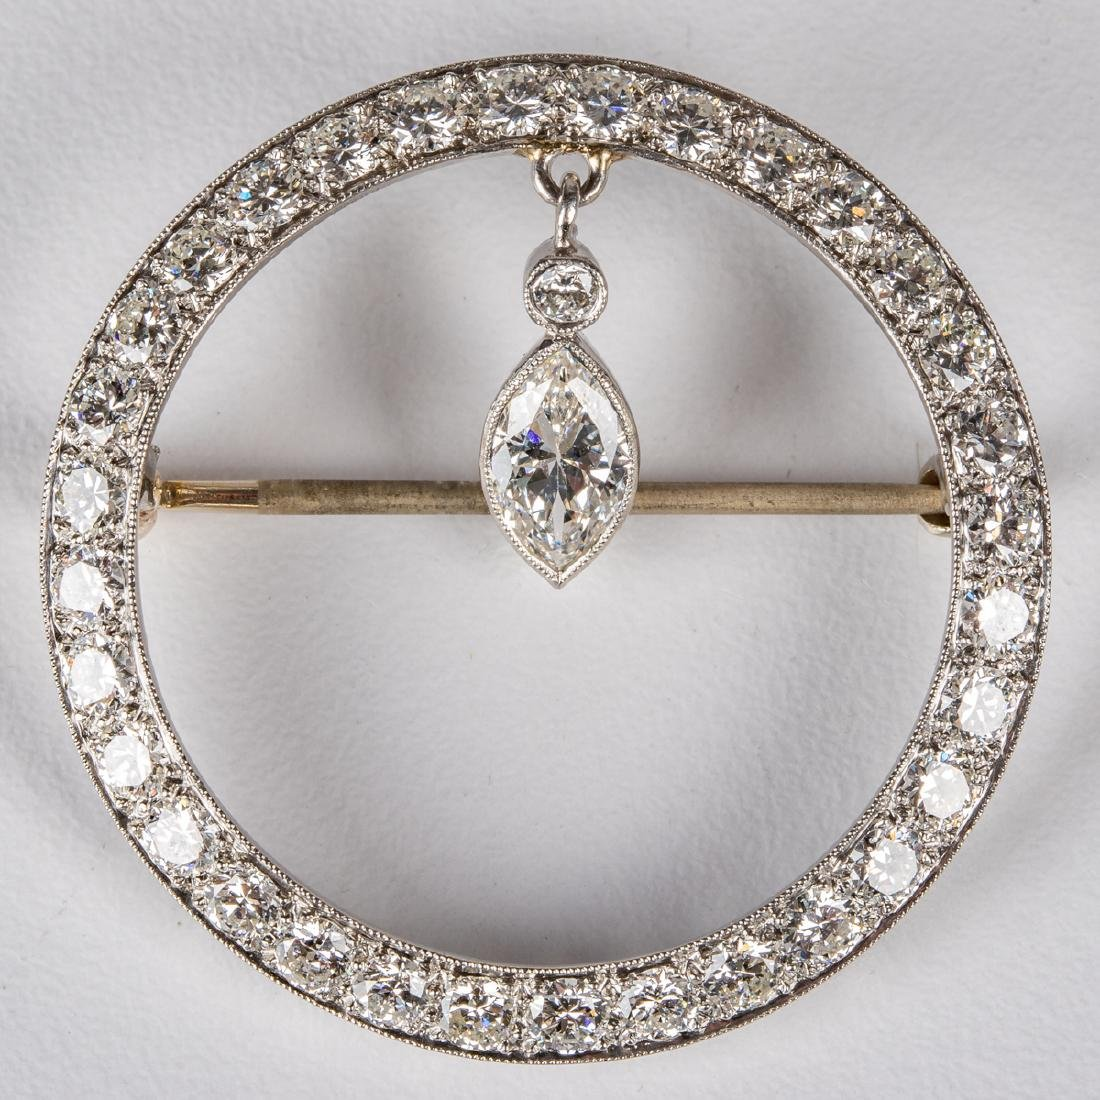 A 14kt. White Gold and Diamond Circular Brooch,